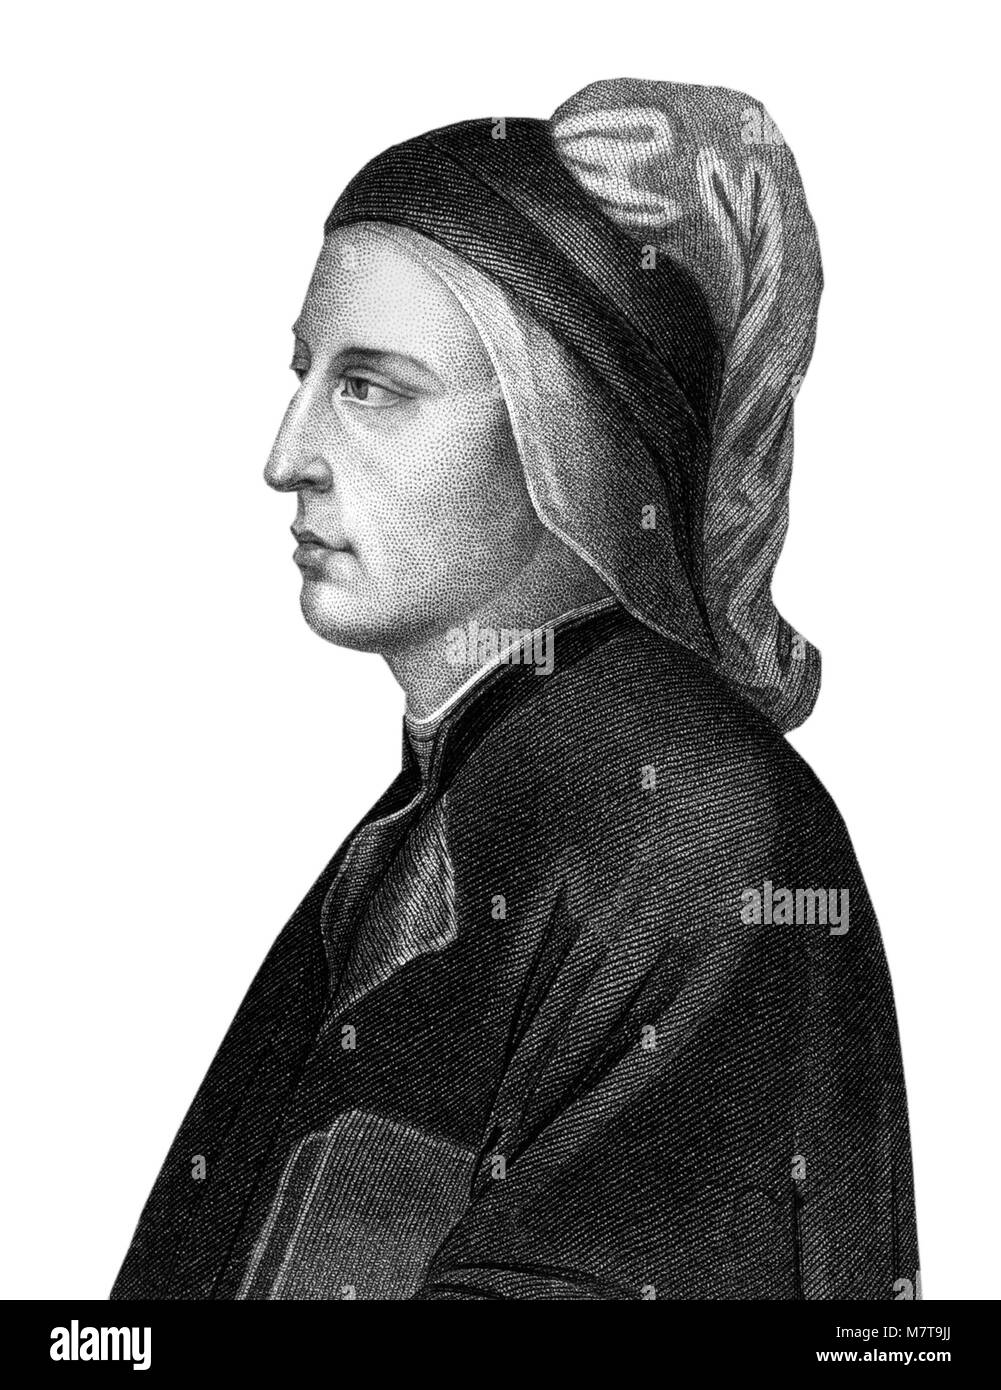 Dante Alighieri (1265-1321), a 19thC engraving of the Italian poet and statesman of the late middle ages. - Stock Image